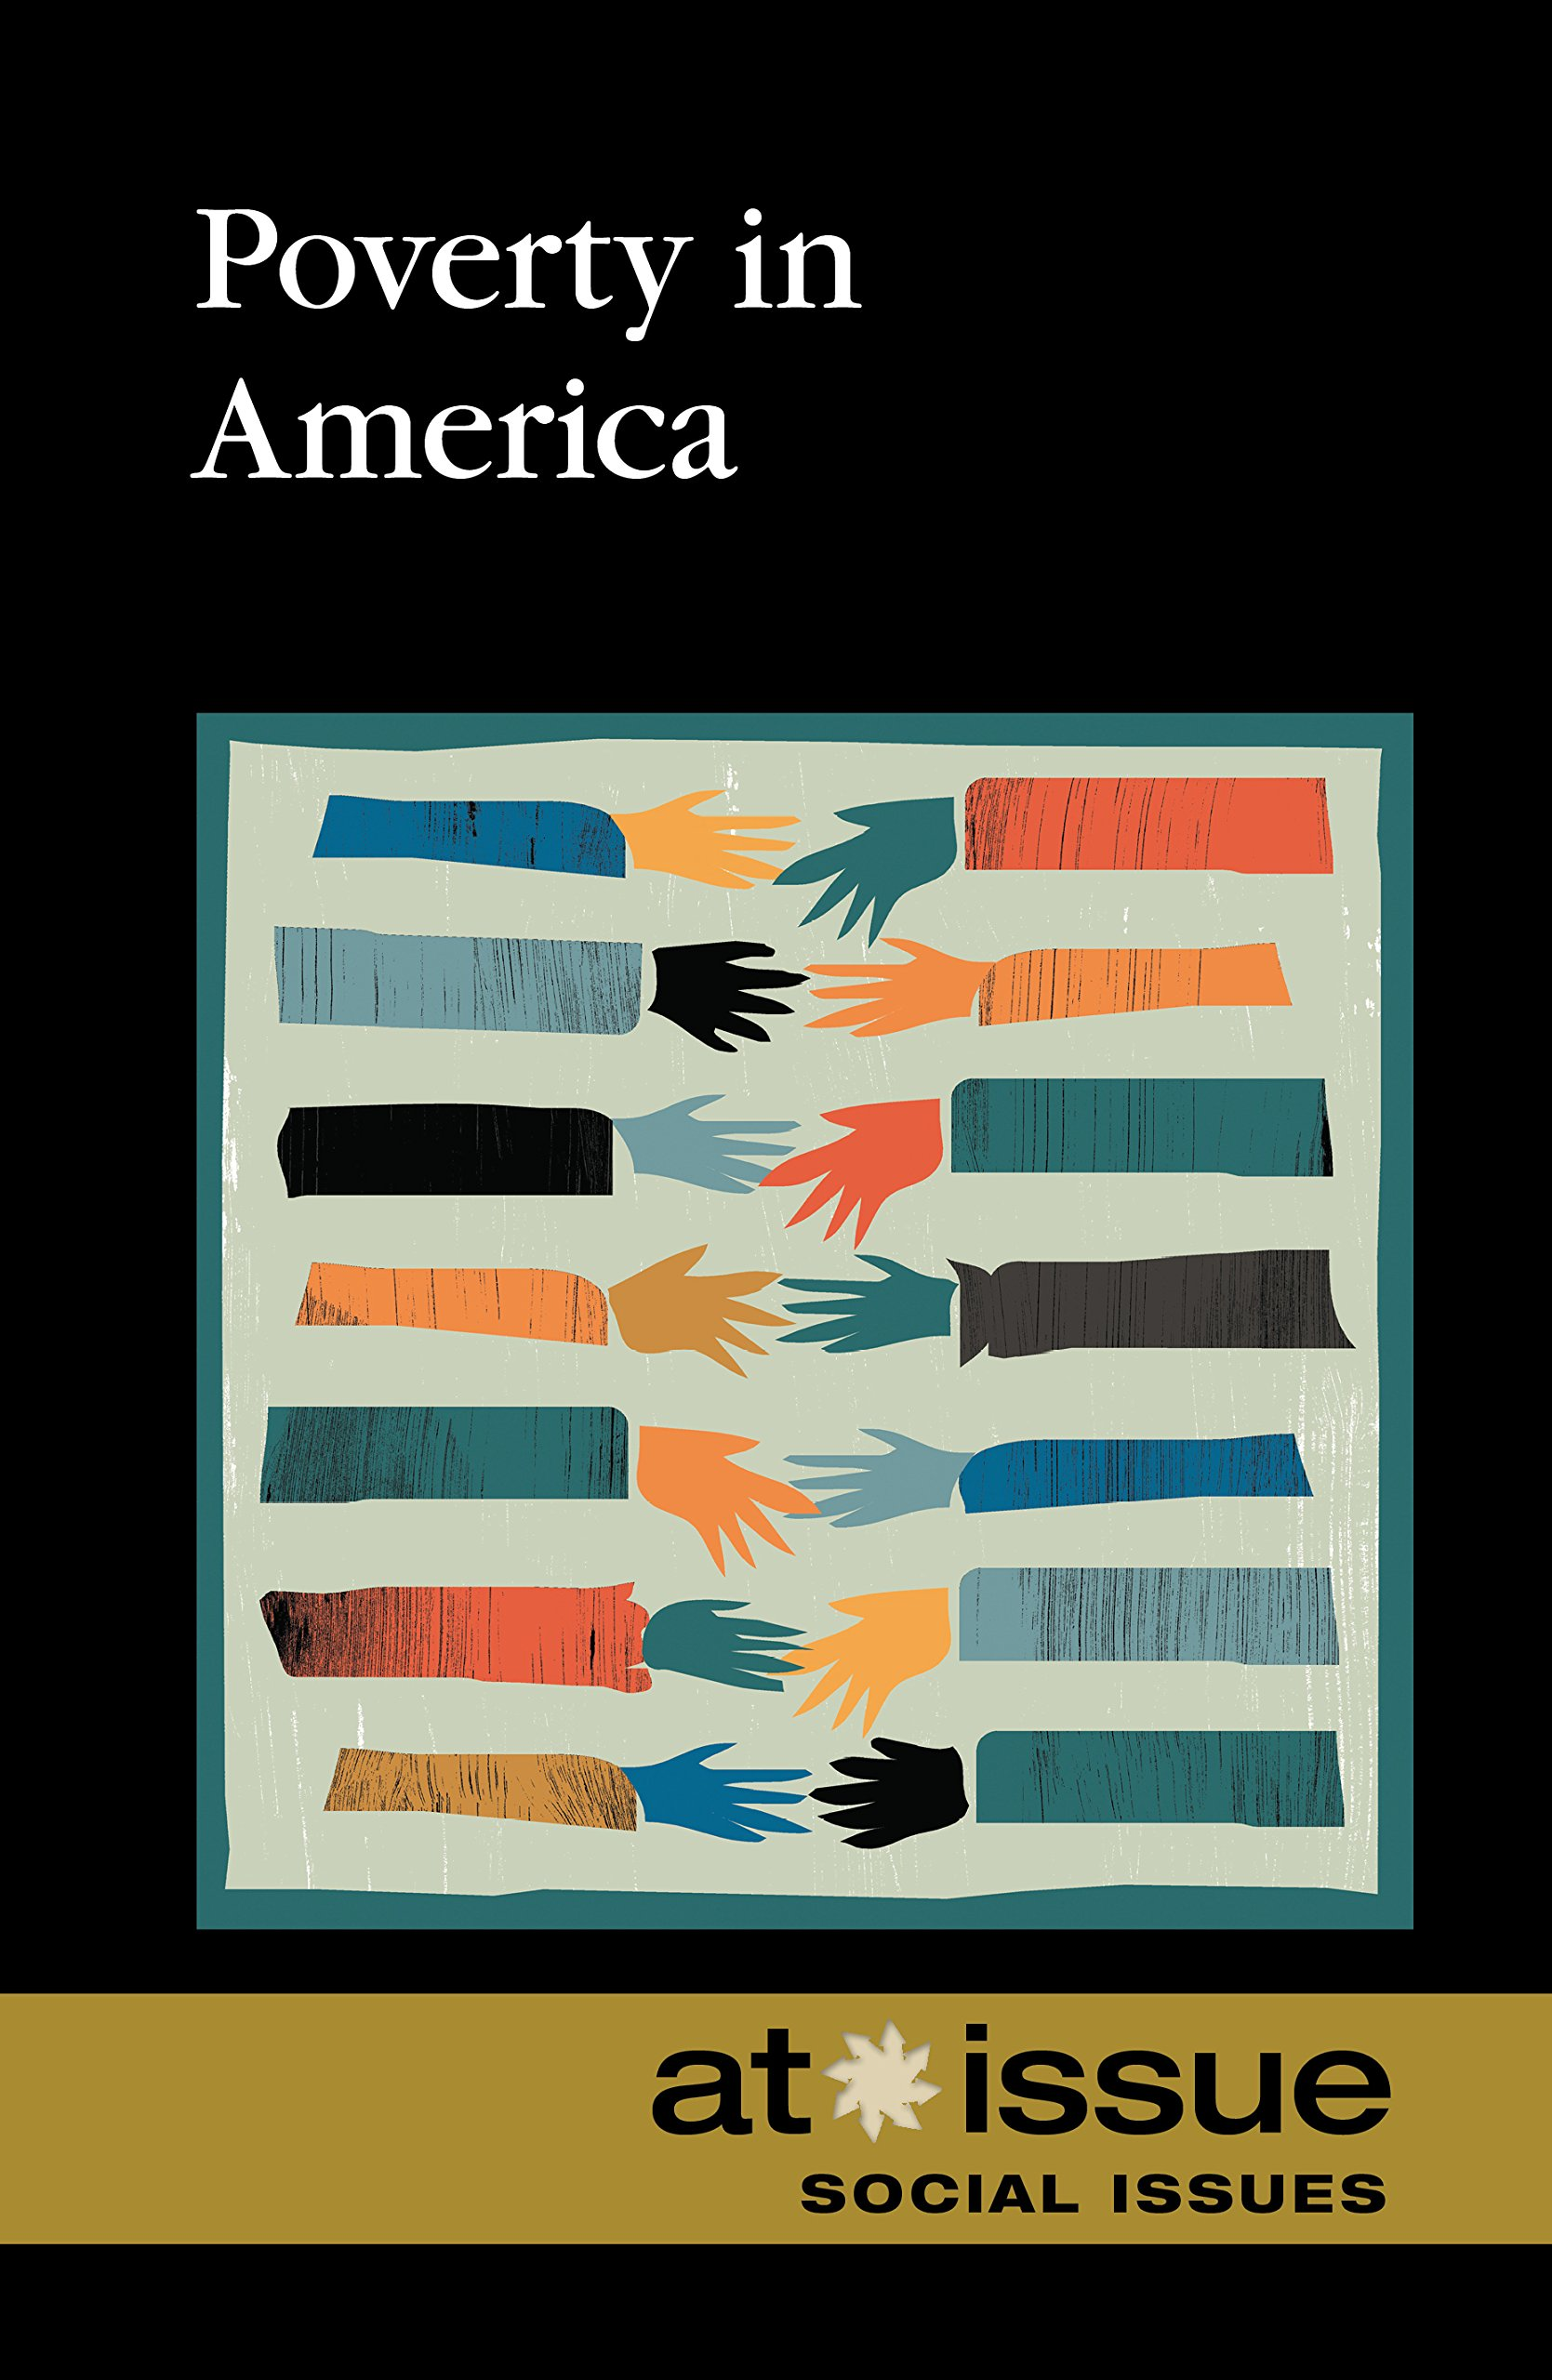 com poverty in america at issue tamara  com poverty in america at issue 9780737771848 tamara thompson books